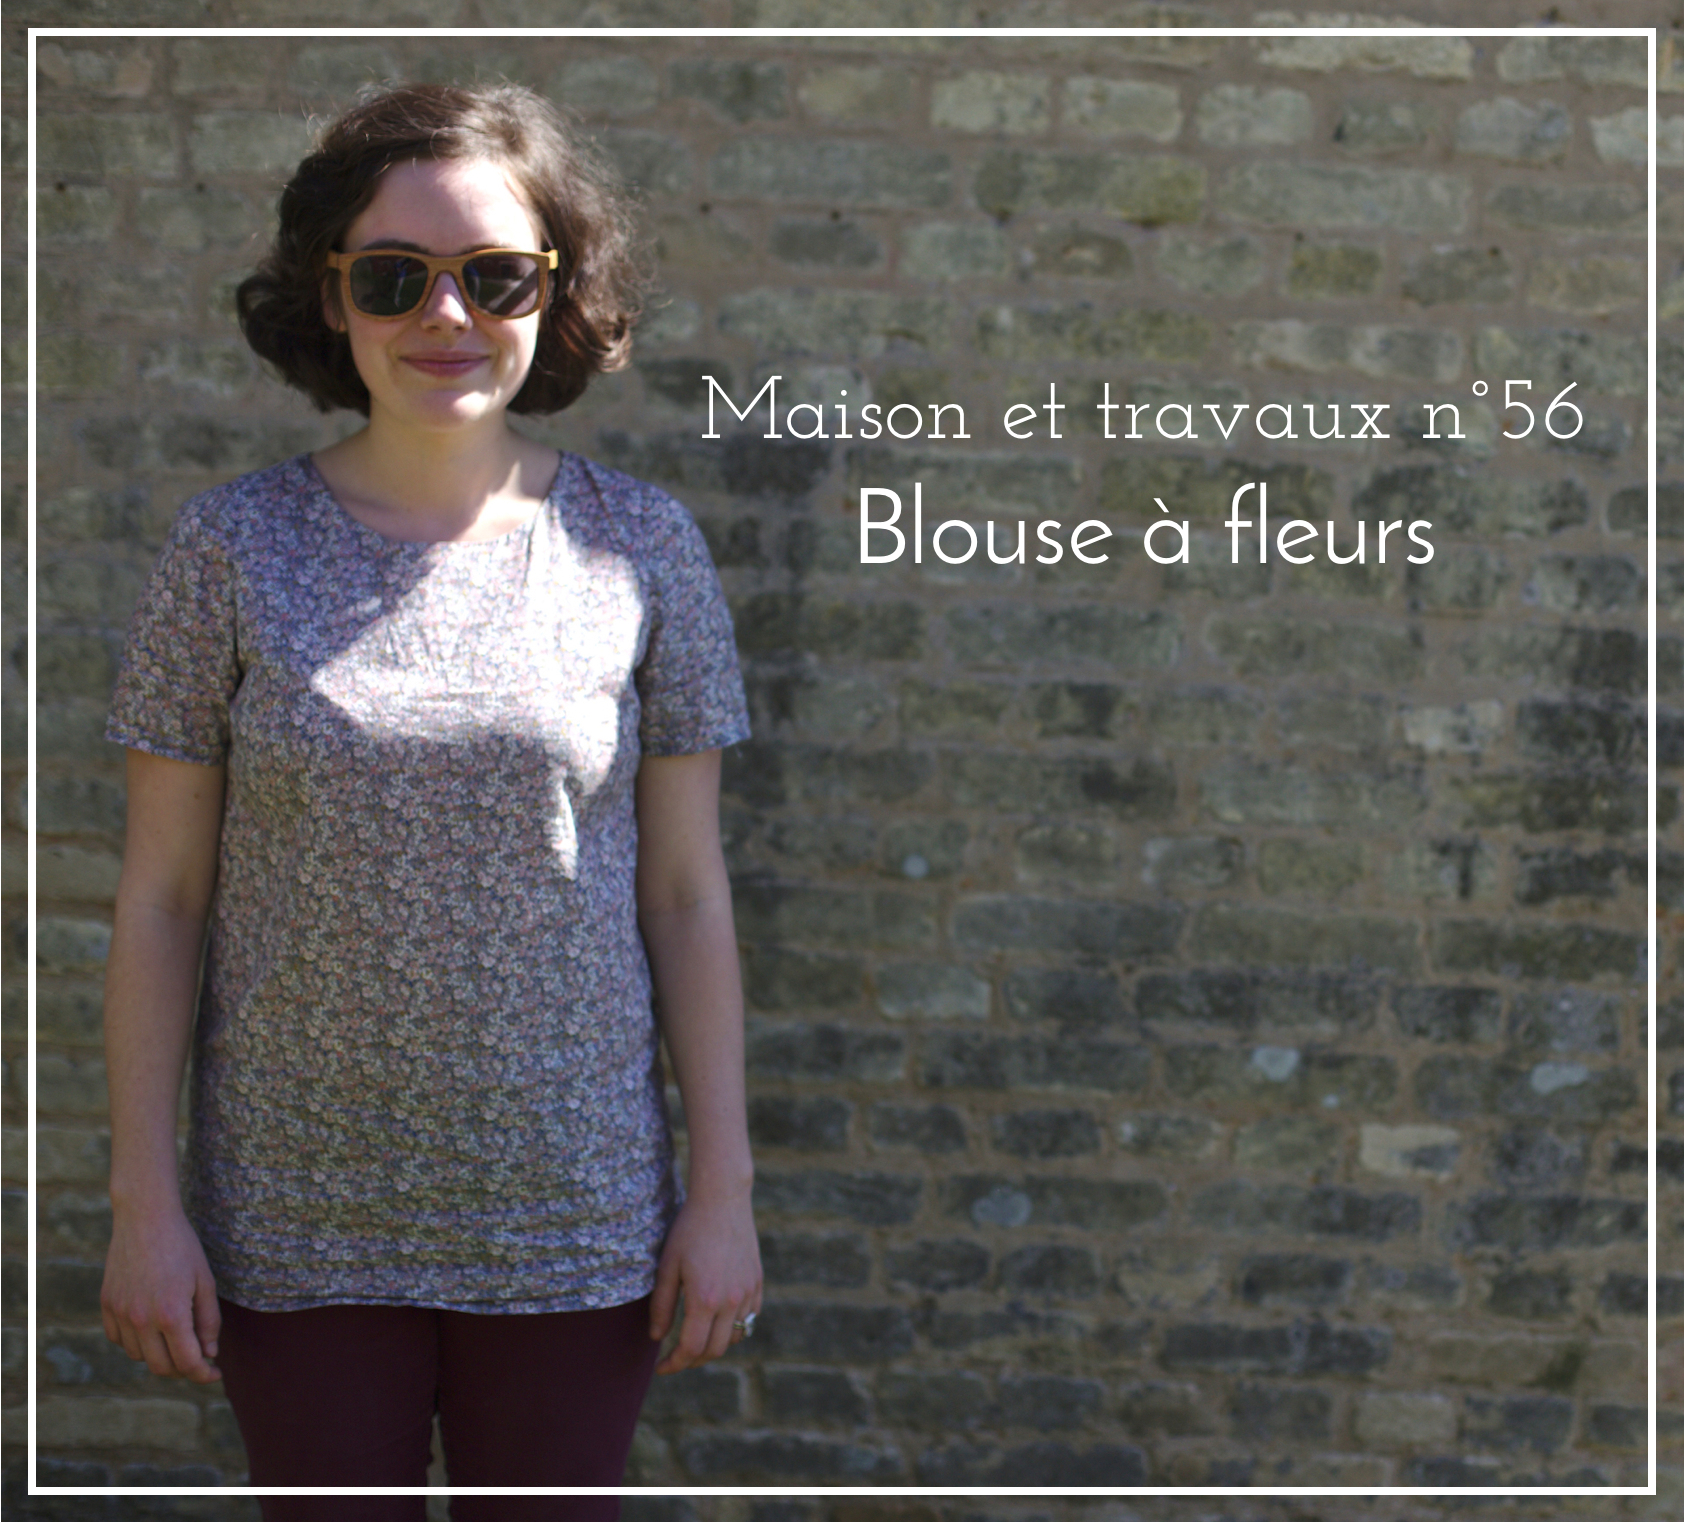 Blouse à fleurs - Sew over it - Ultimate shift dress